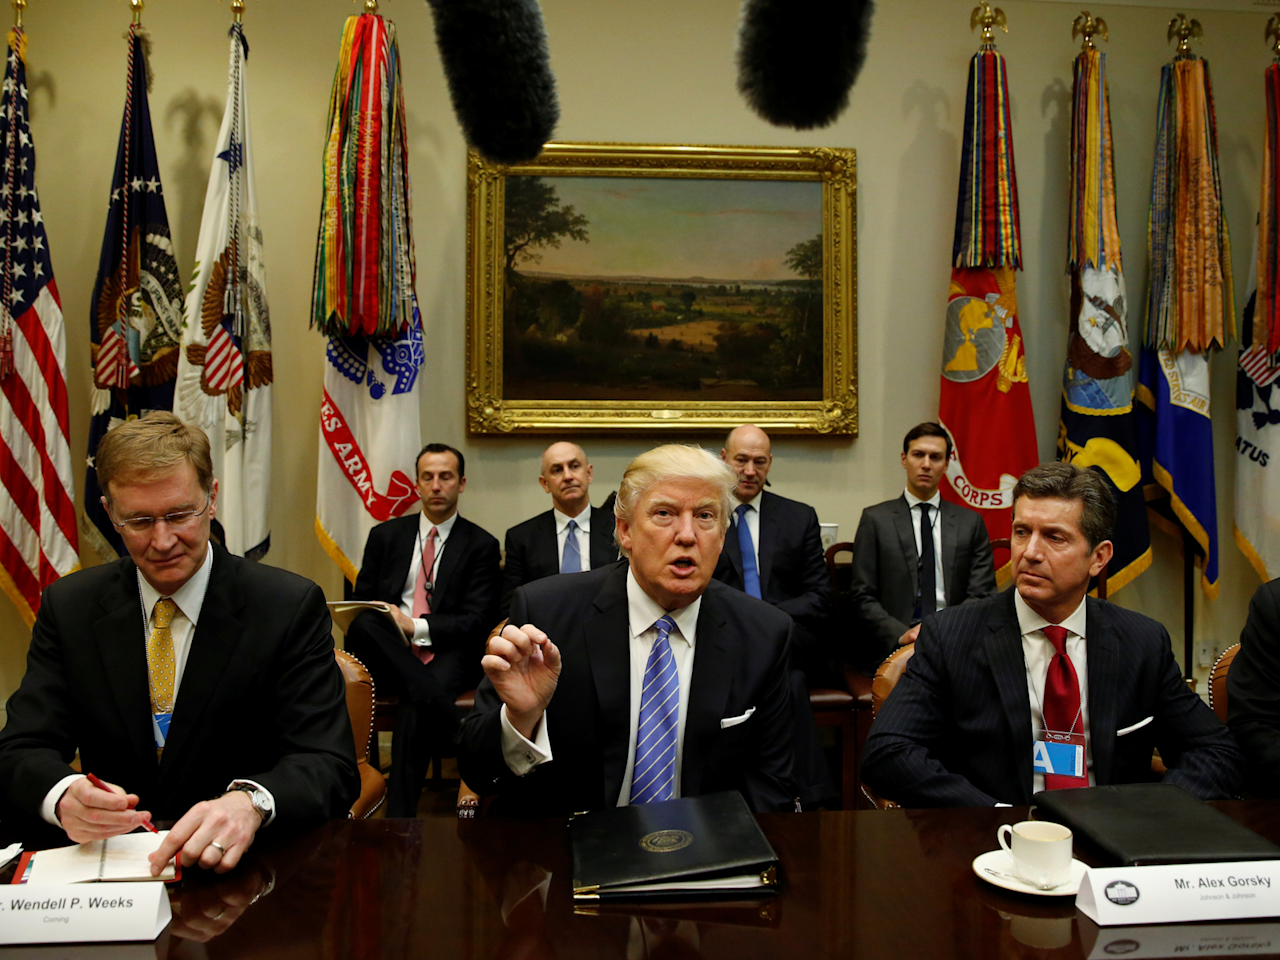 U.S. President Donald Trump hosts a meeting with business leaders in the Roosevelt Room of the White House in Washington January 23, 2017. From left are Corning CEO Wendell Weeks, Trump, Johnson & Johnson CEO Alex Gorsky and Dell CEO Michael Dell.